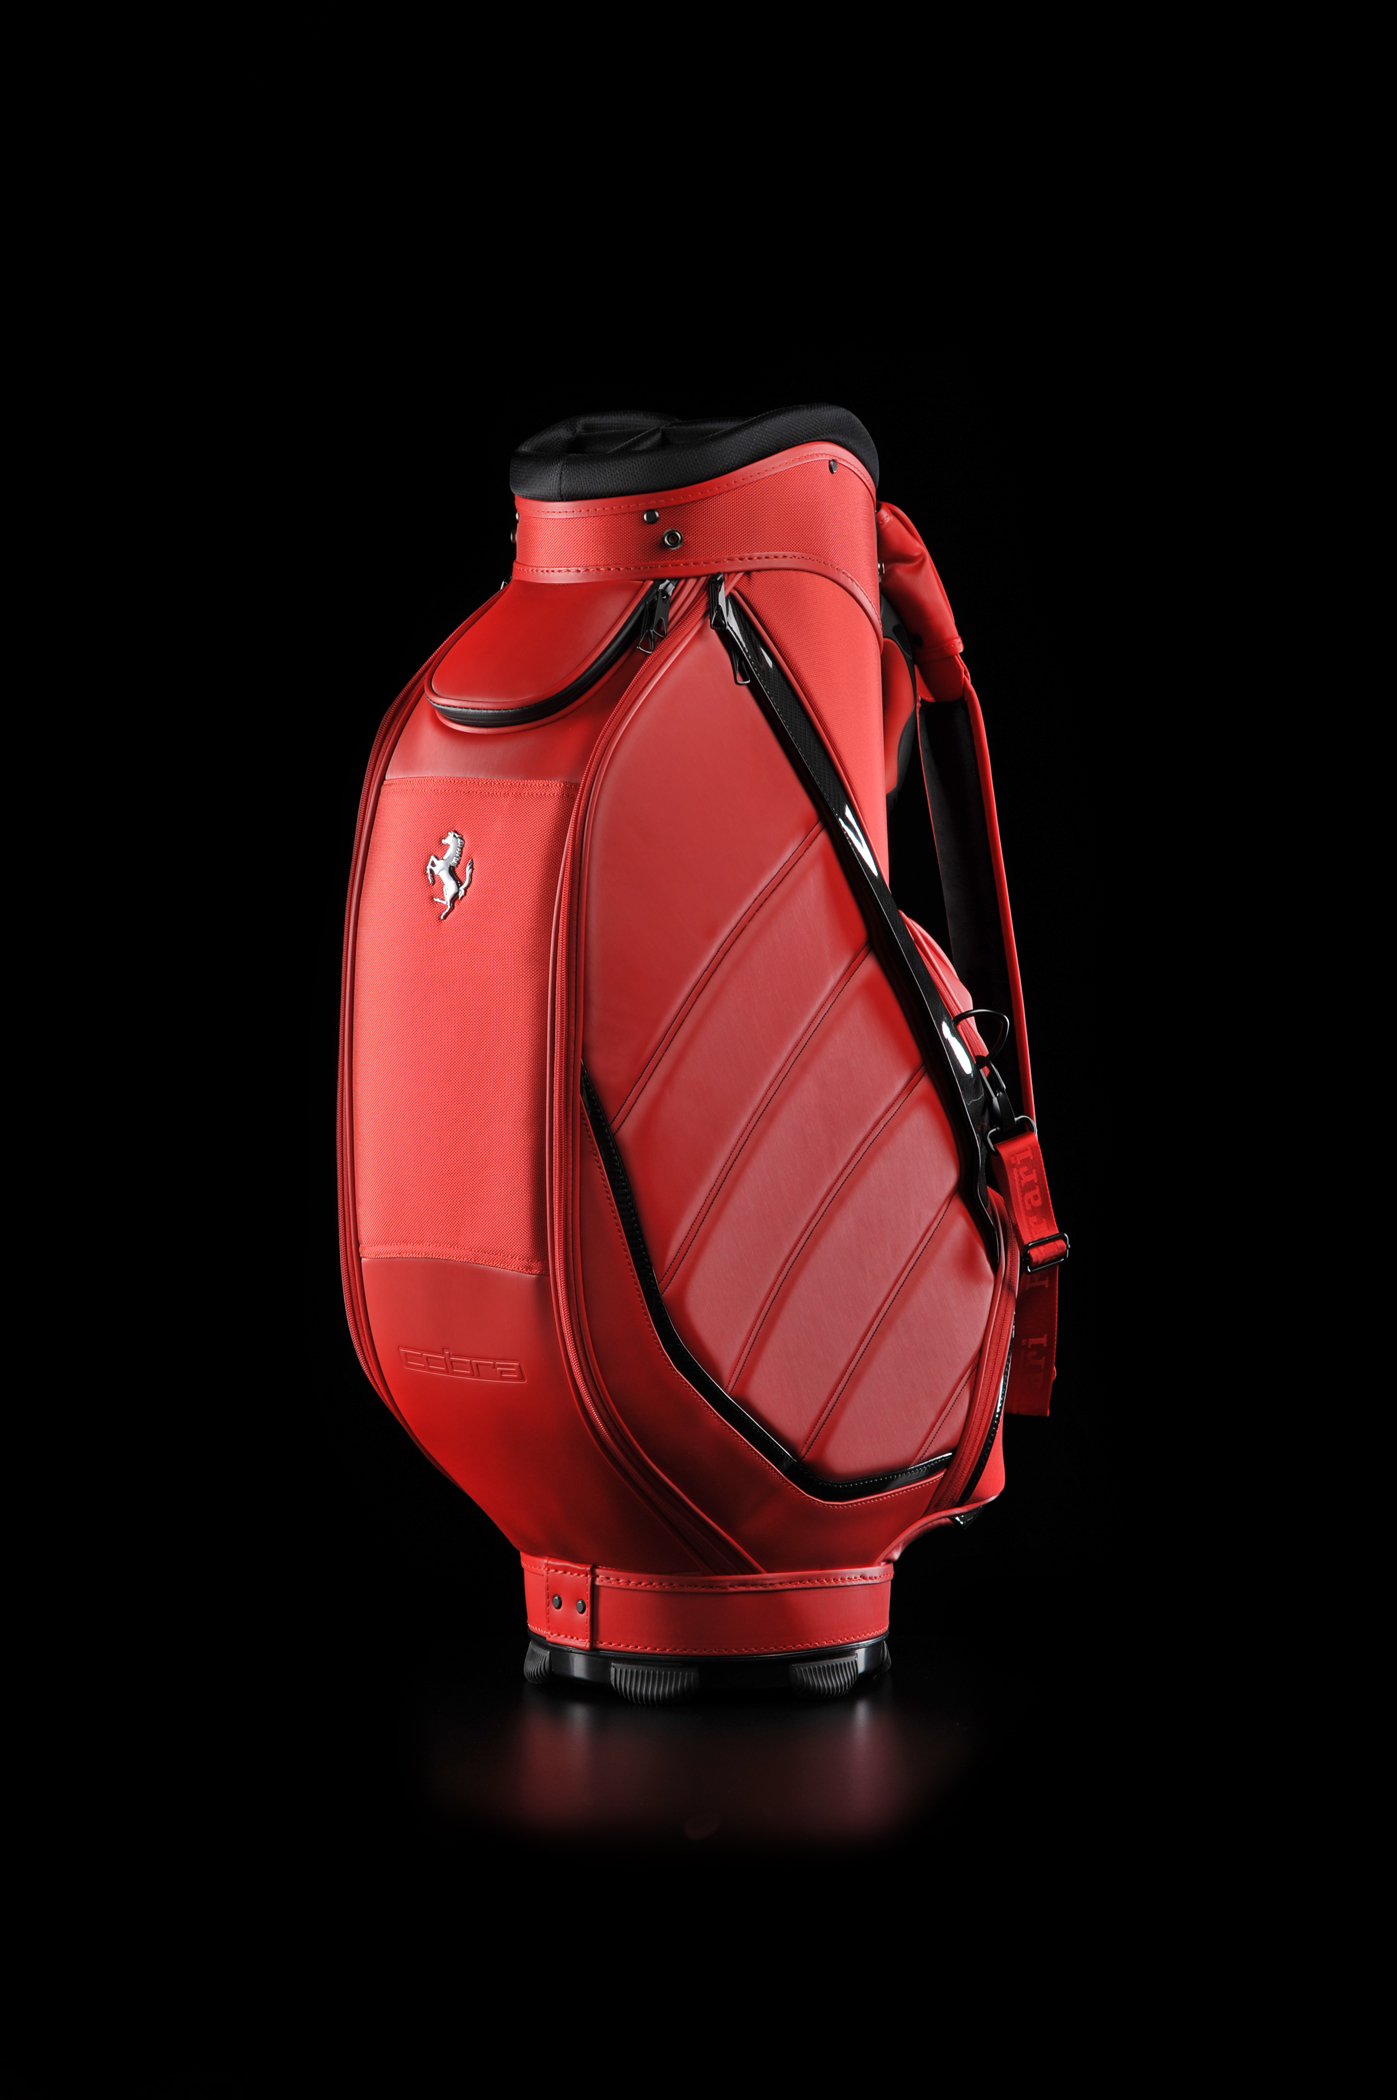 Ferrari Puma Golf Cheaper Than Retail Price Buy Clothing Accessories And Lifestyle Products For Women Men